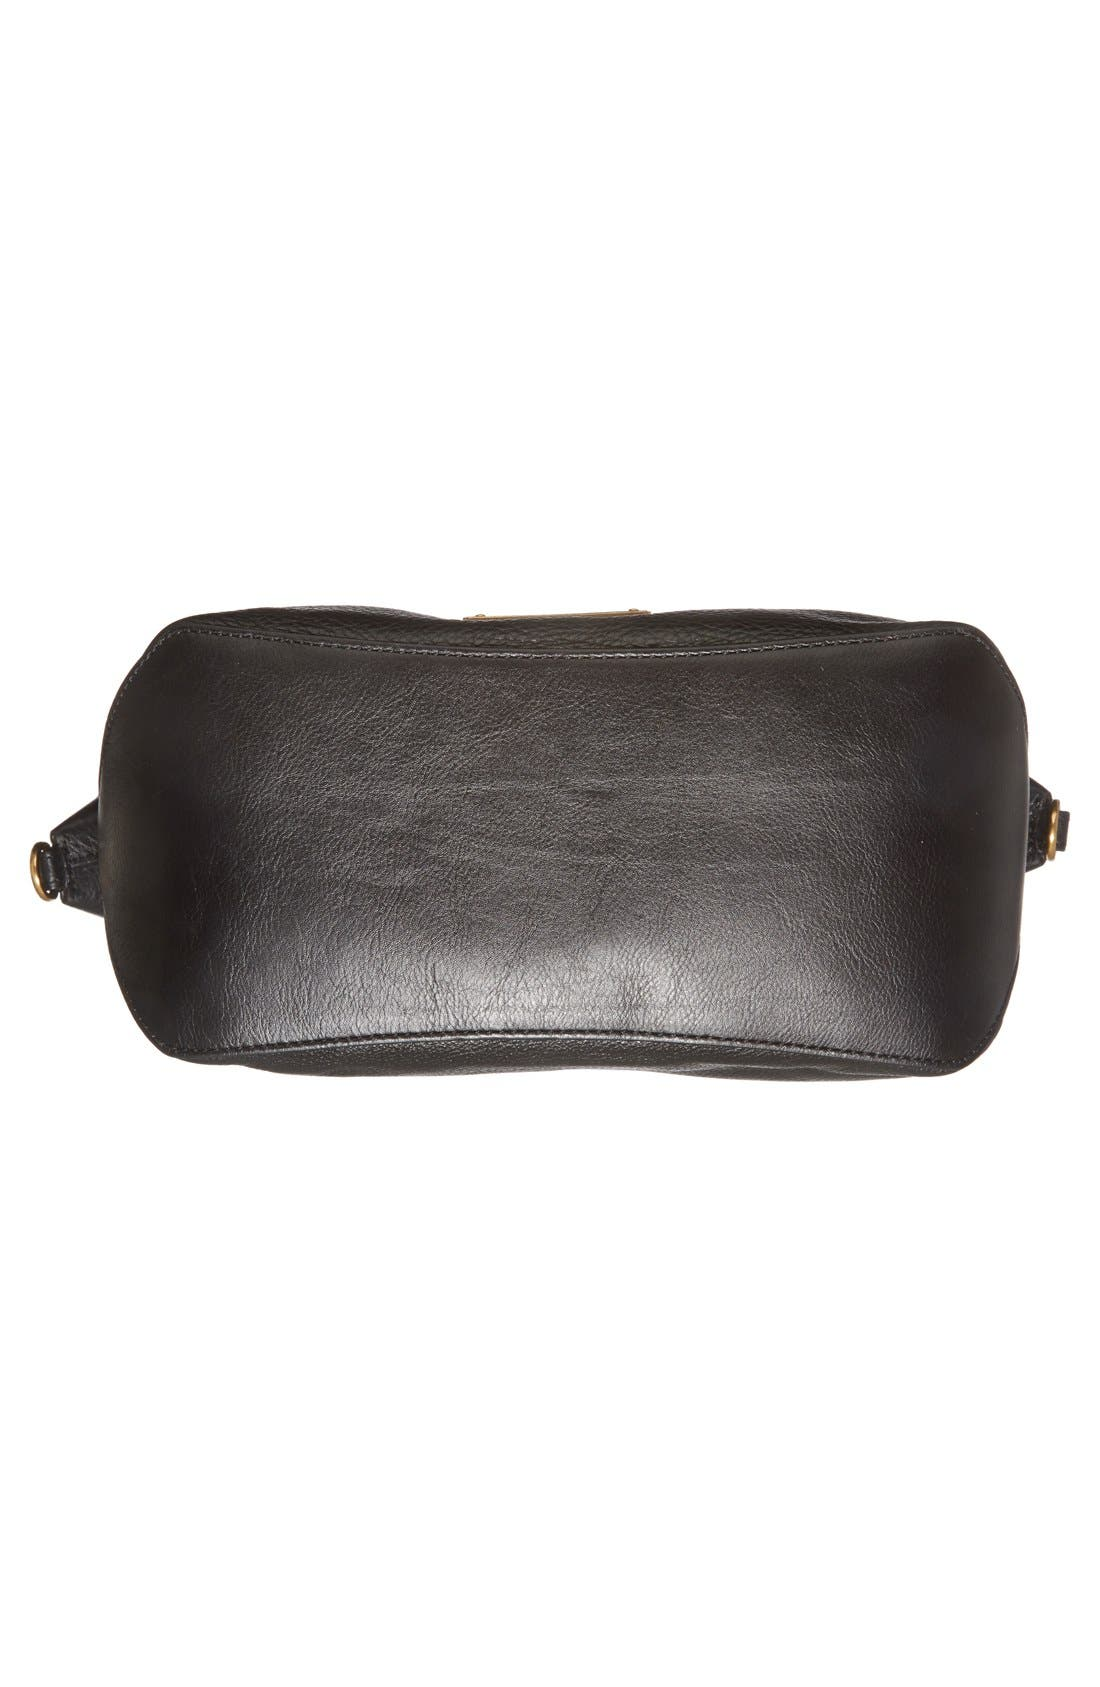 MARC JACOBS, MARC BY MARC JACOBS 'New Too Hot to Handle' Leather Satchel, Alternate thumbnail 3, color, 001